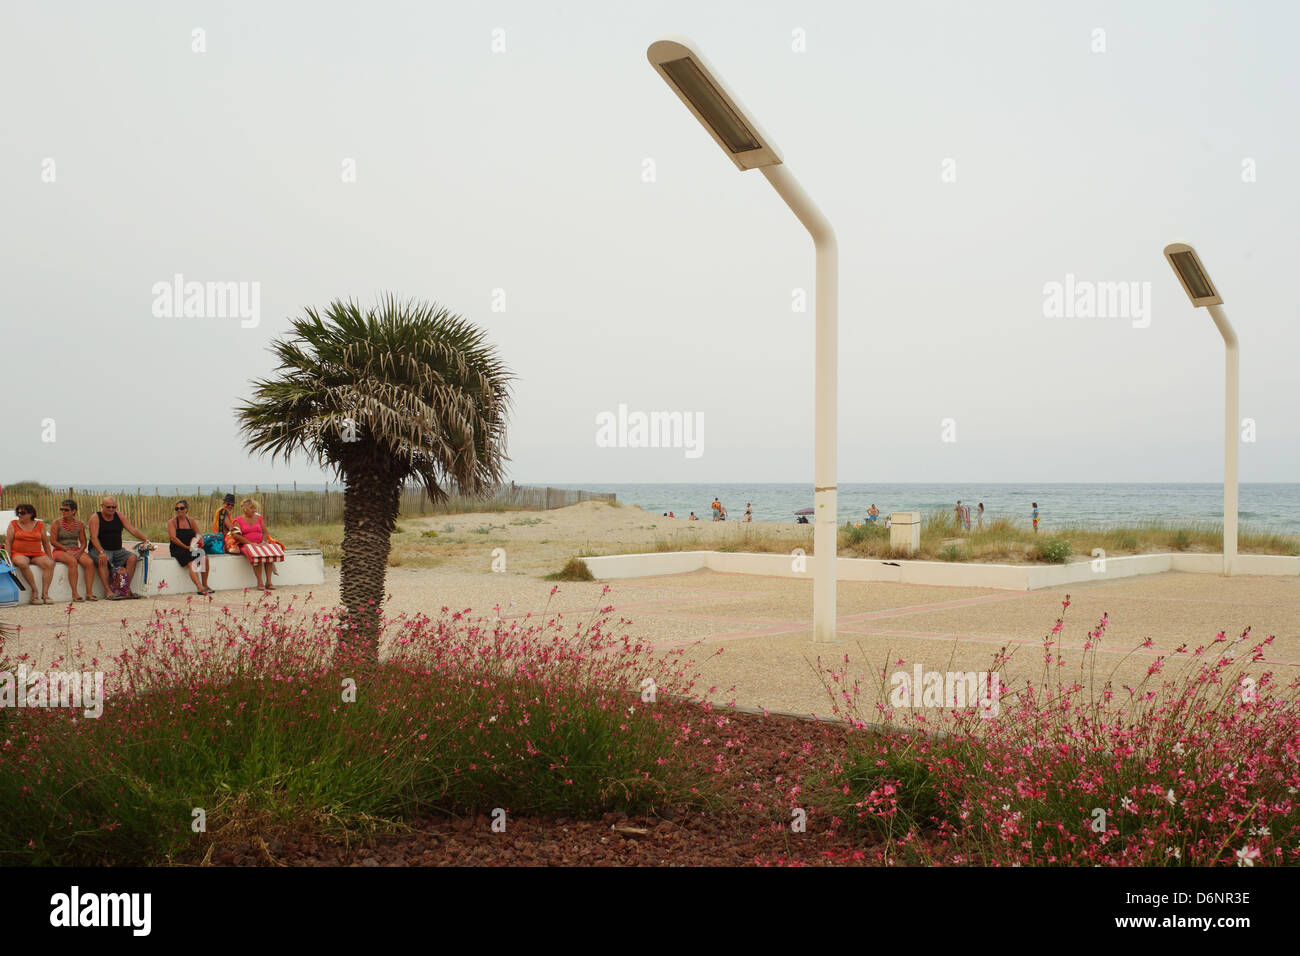 Le Barcares, France, street lamps on the beach promenade in the seaside resort of Le Barcares - Stock Image